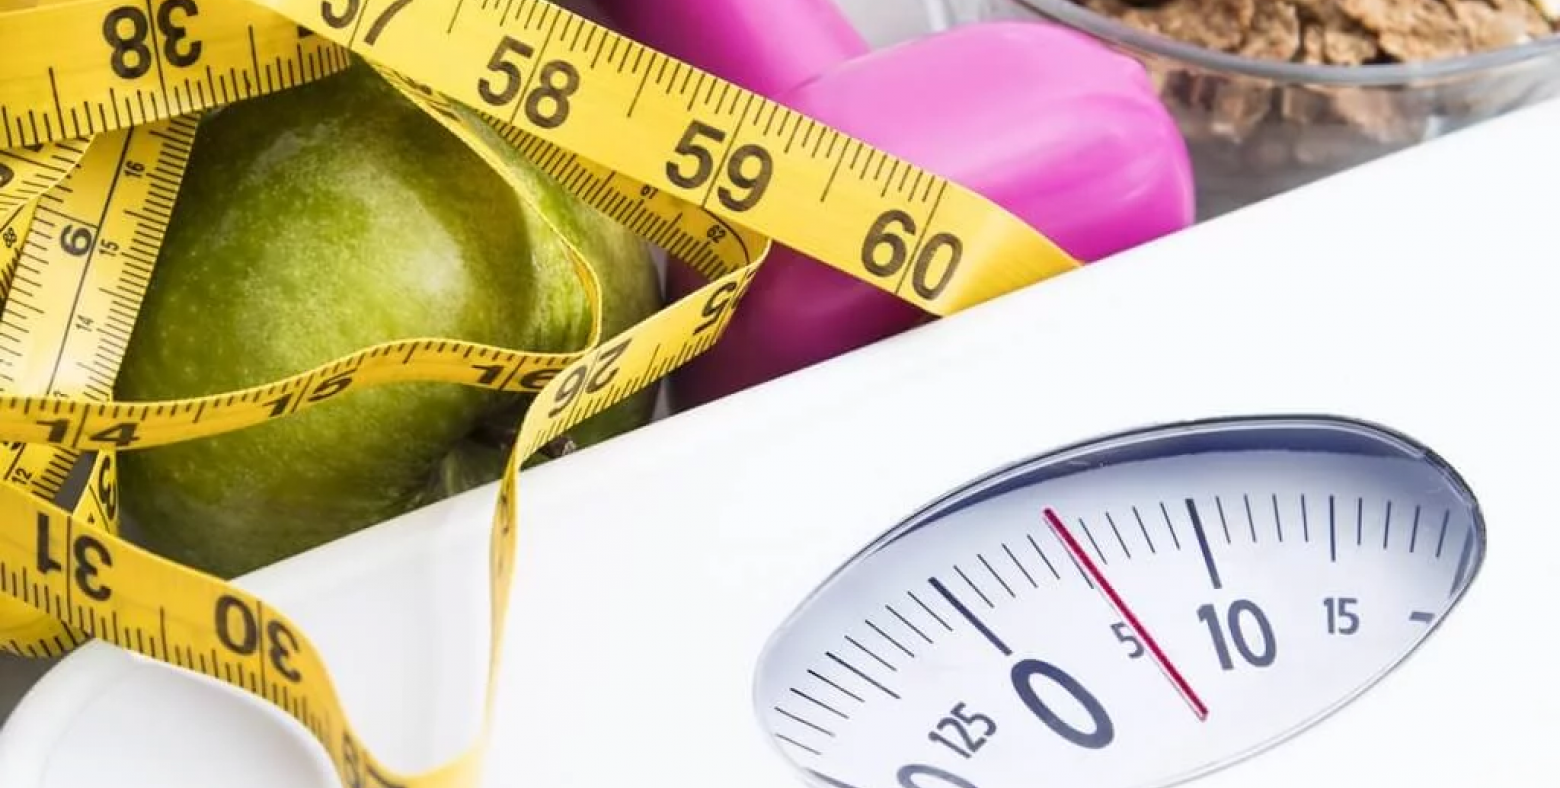 scale, measuring tape, pink dumbbell and green apples